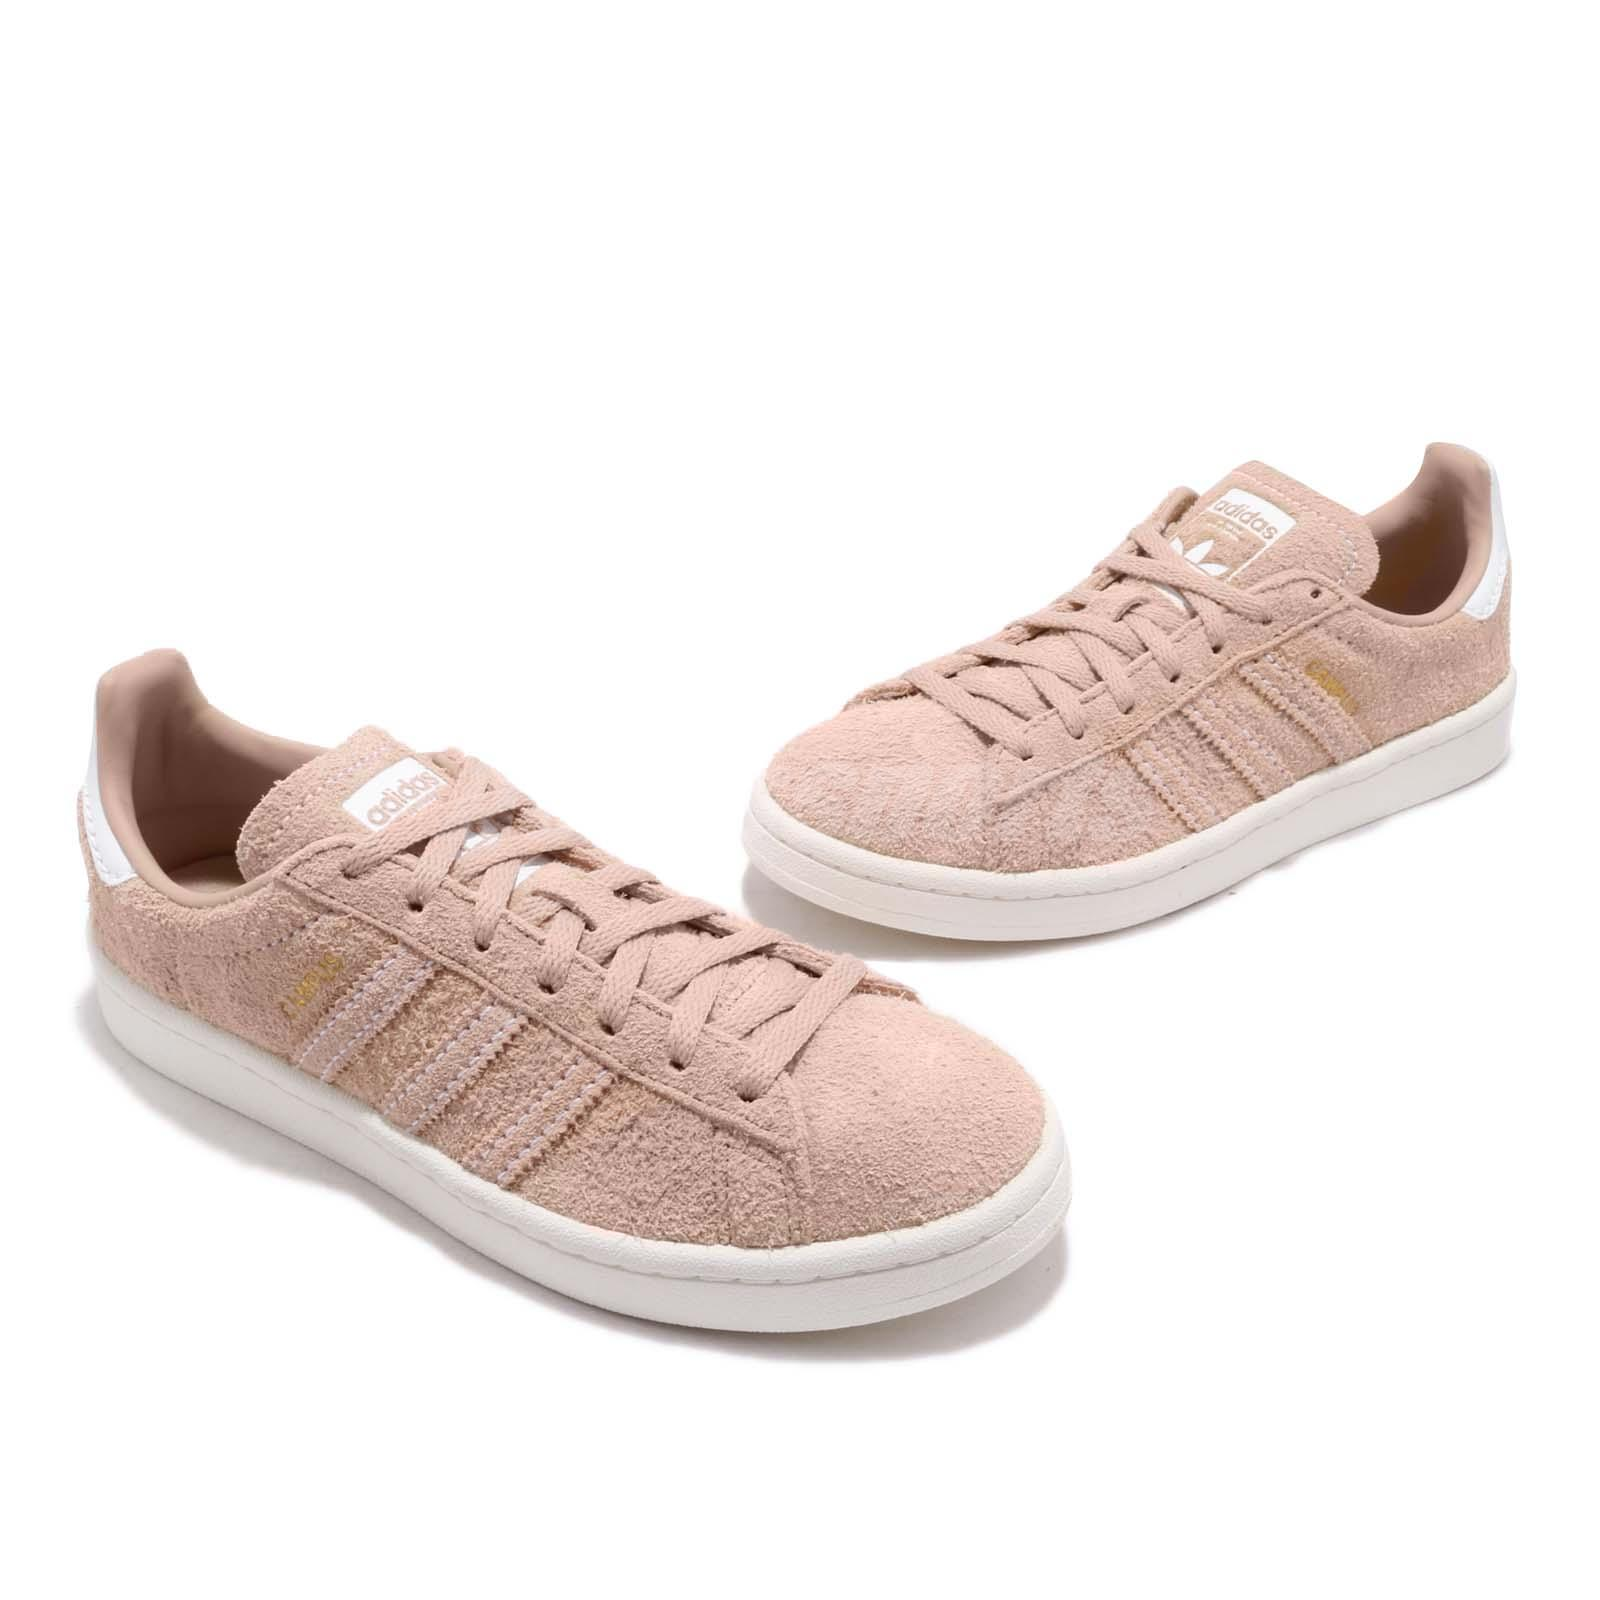 new products 239de 2afdd adidas Originals Campus W Ash Pearl White Women Casual Shoes